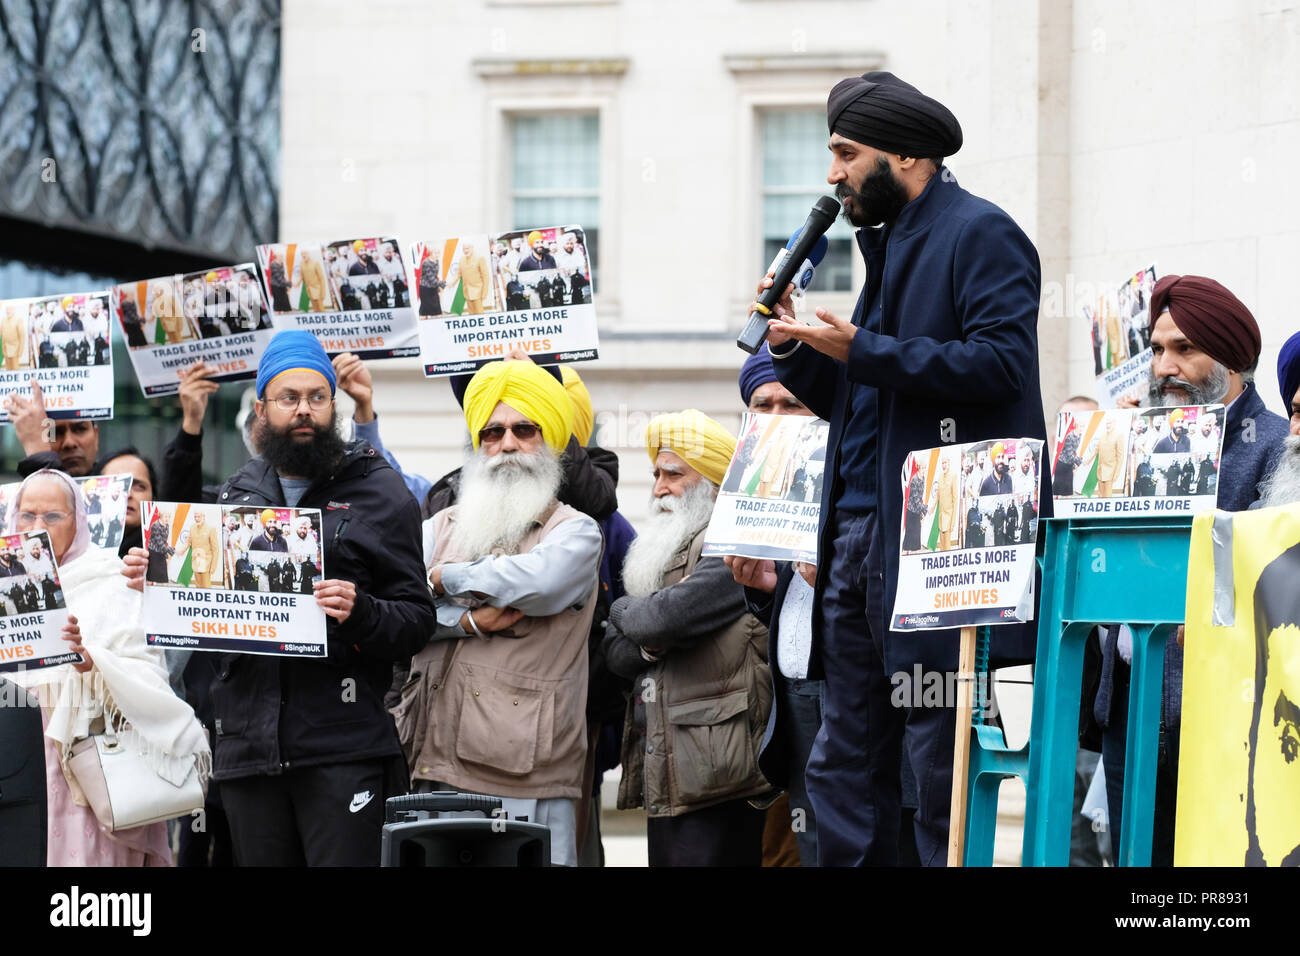 Birmingham, UK - 30 September 2018. Speaker at a protest to demand the release of Jagtar Singh Johal, a 31 year old British Sikh from Scotland detained in India for almost one year - the protest was organised by the Free Jaggi Now group.  Photo Steven May / Alamy Live News Stock Photo